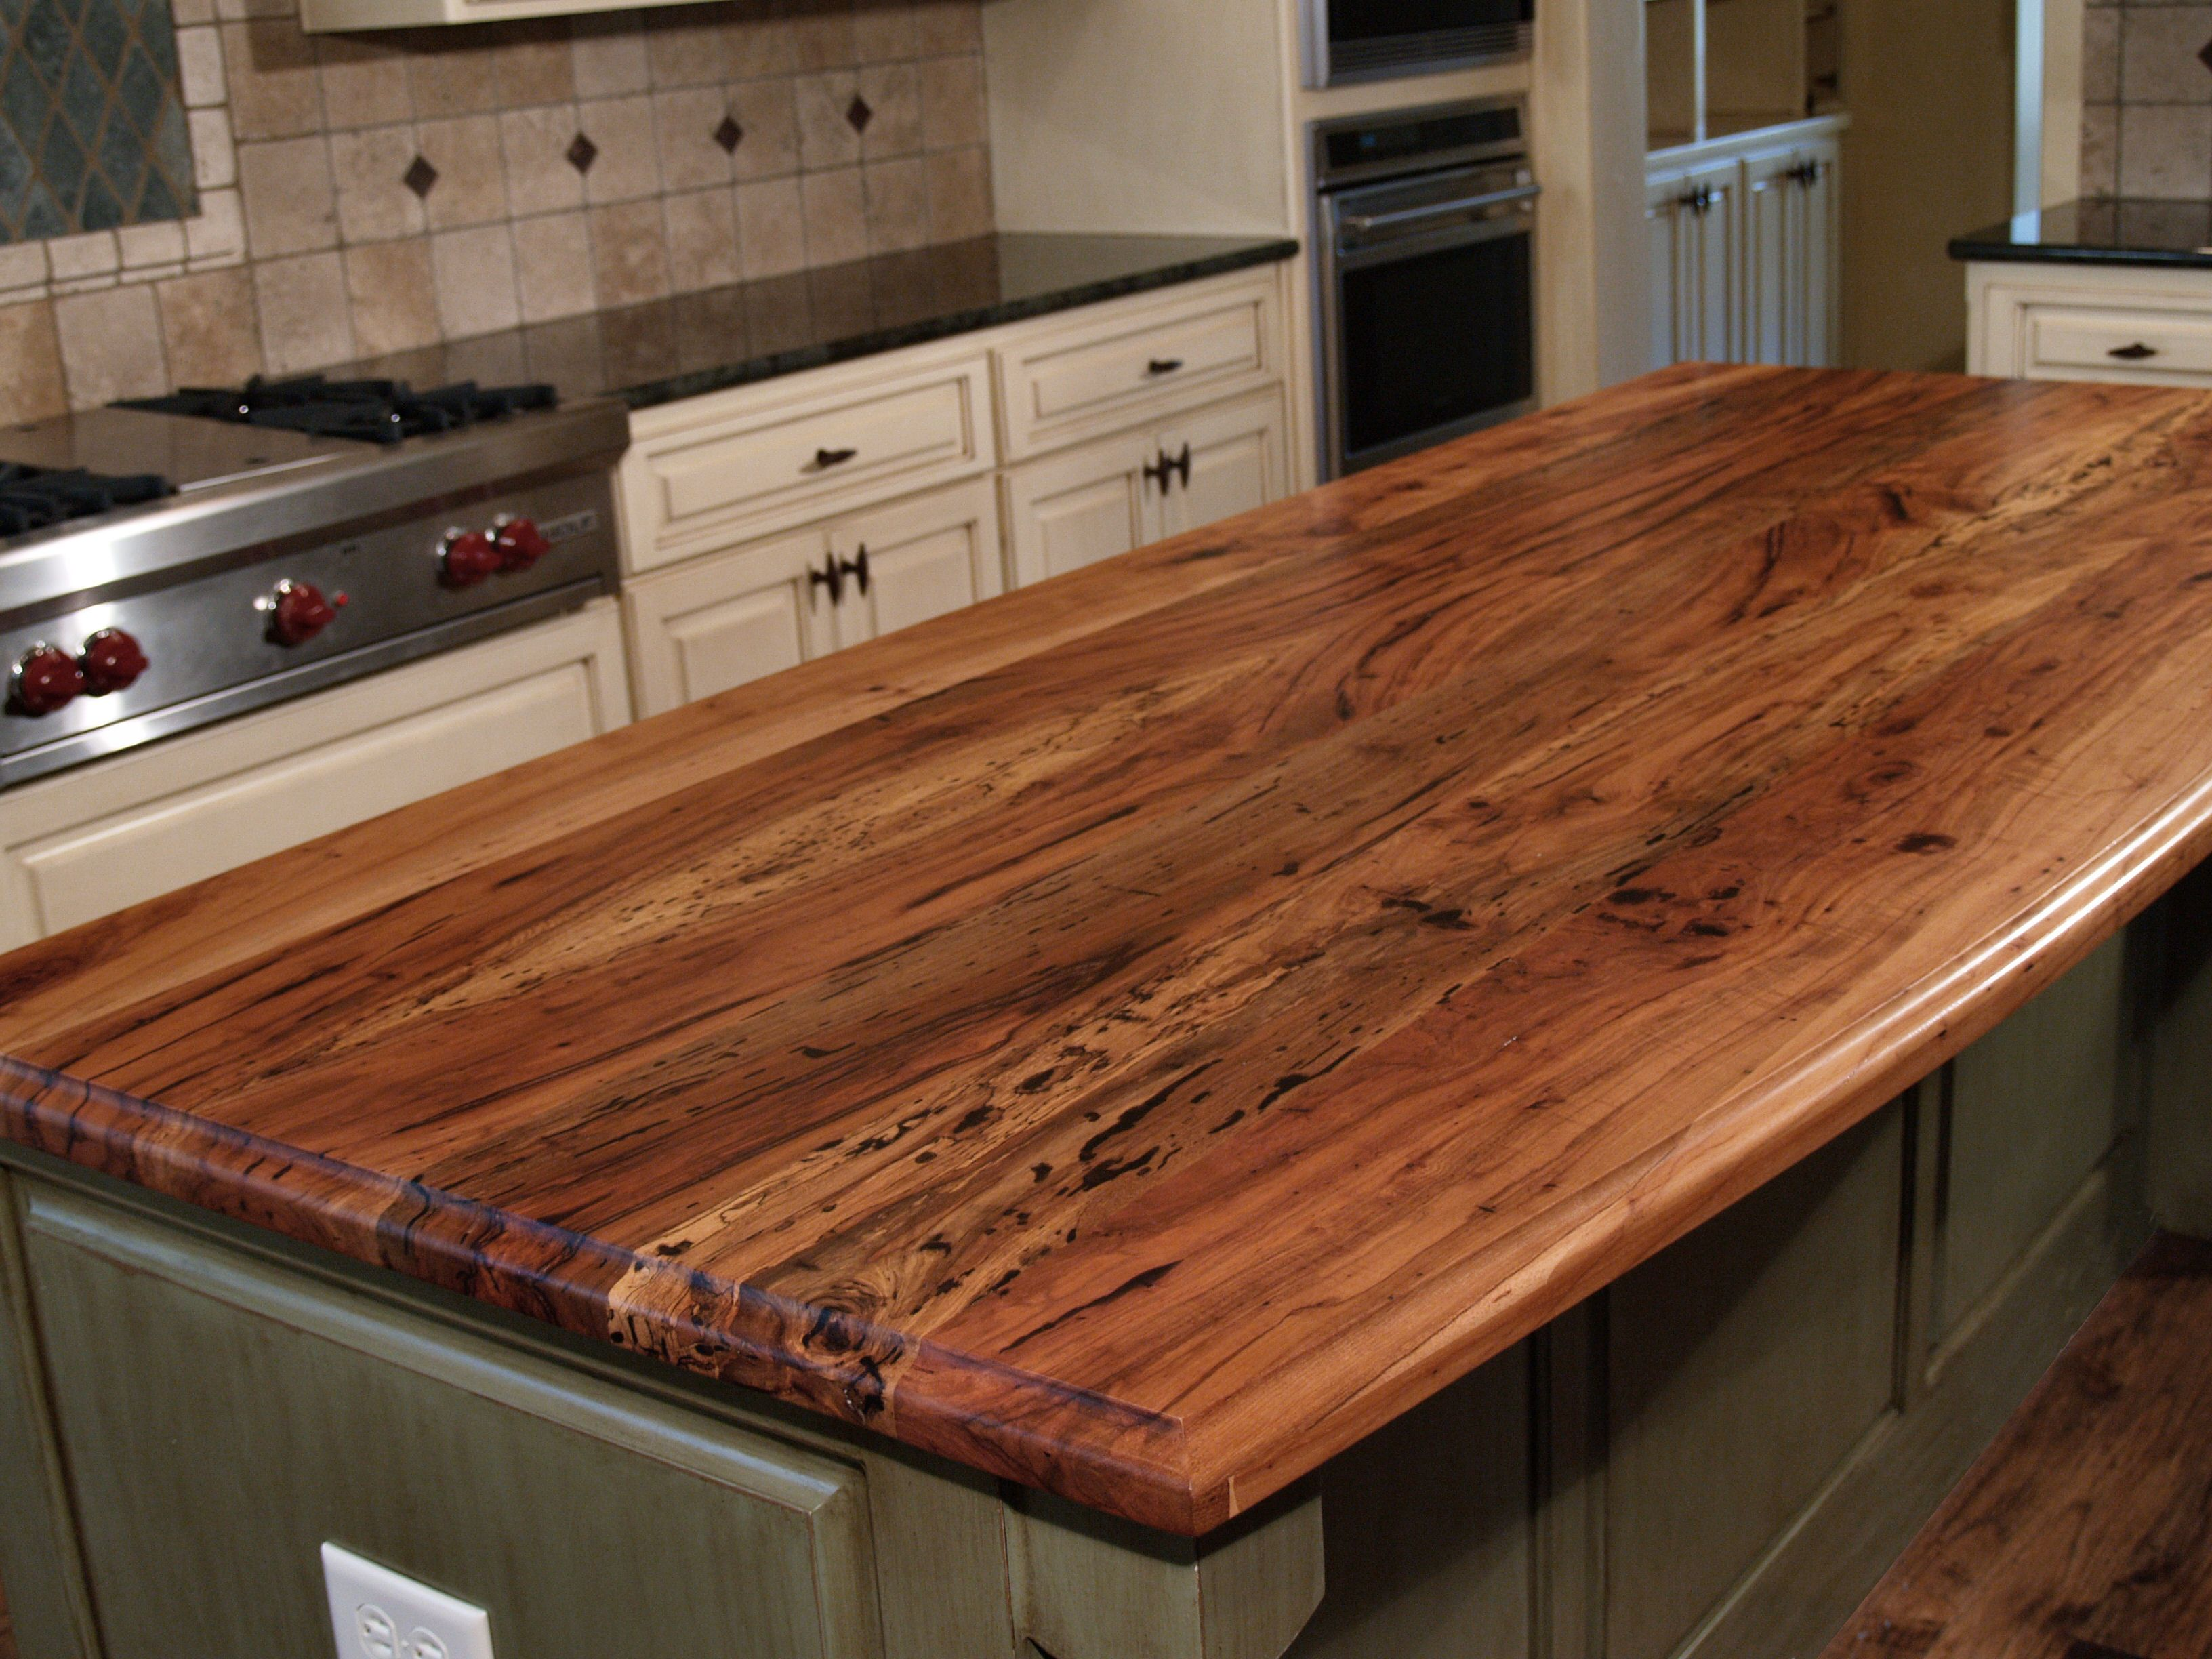 ... Pecan Wood Countertop Photo Gallery, by DeVos Custom Woodworking